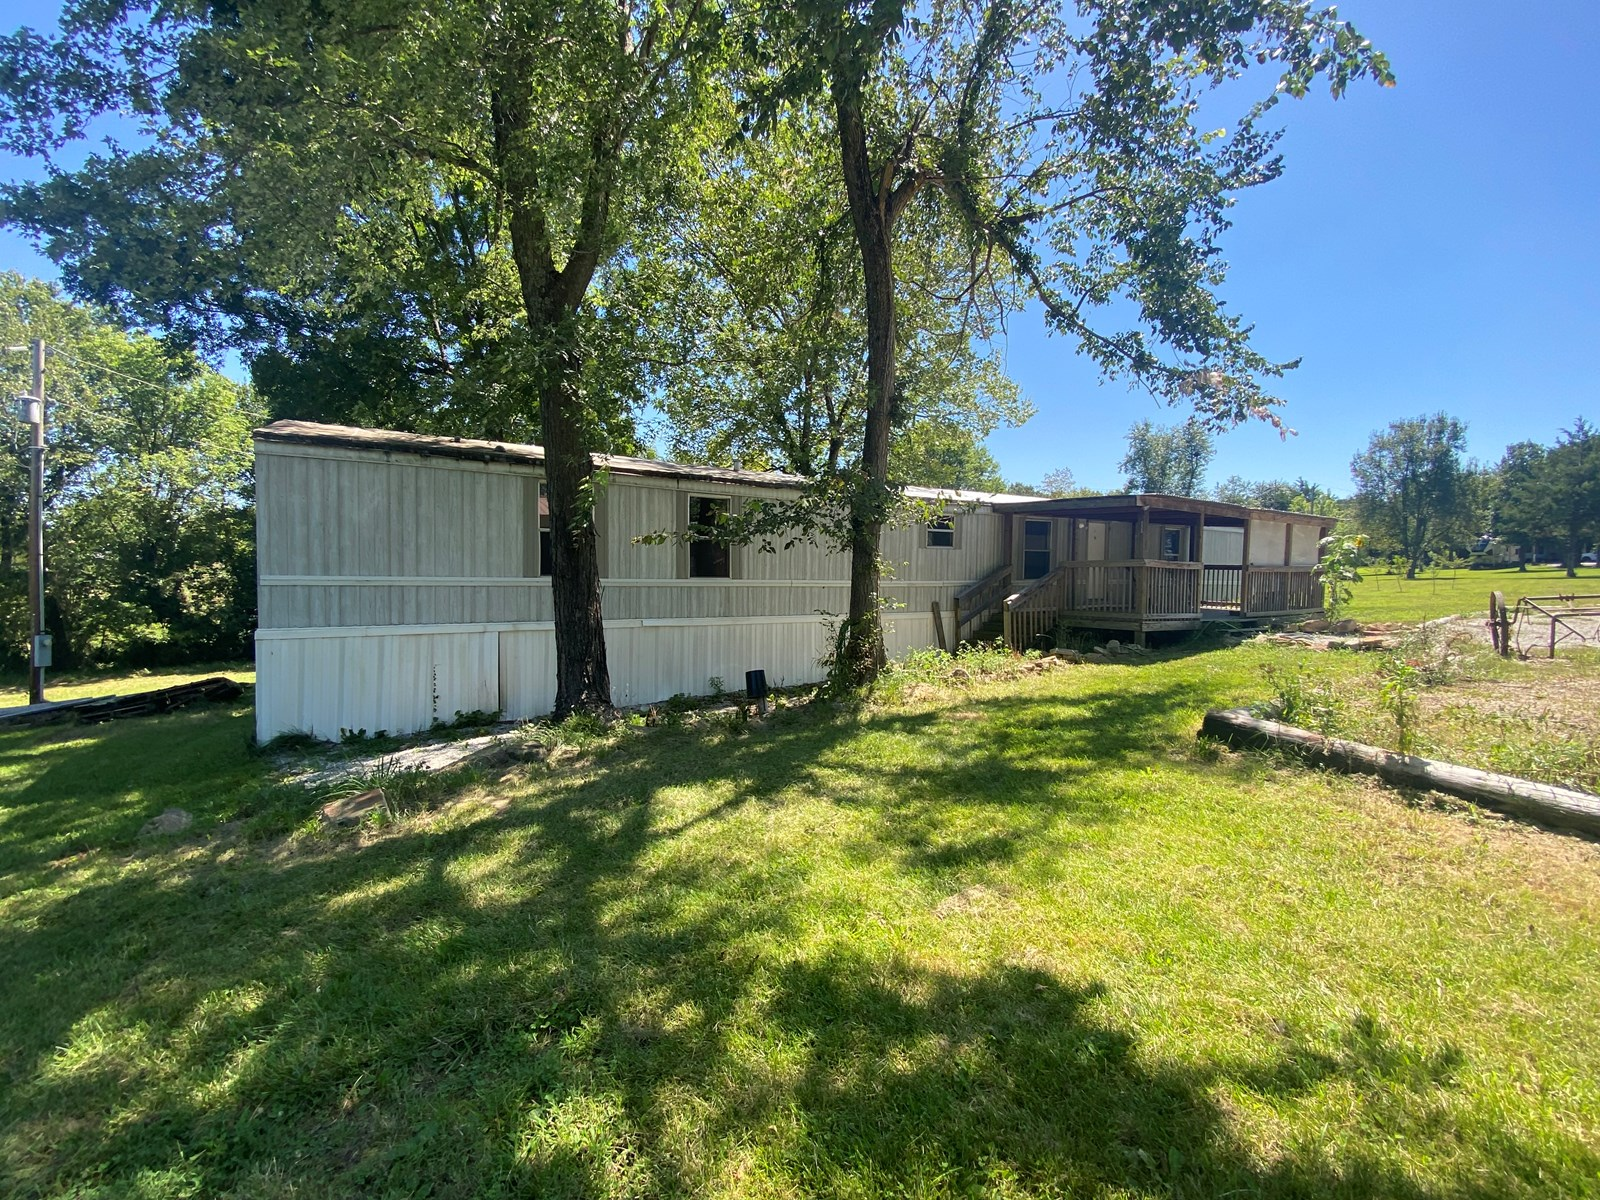 Home for sale Grovespring MO, Wright County